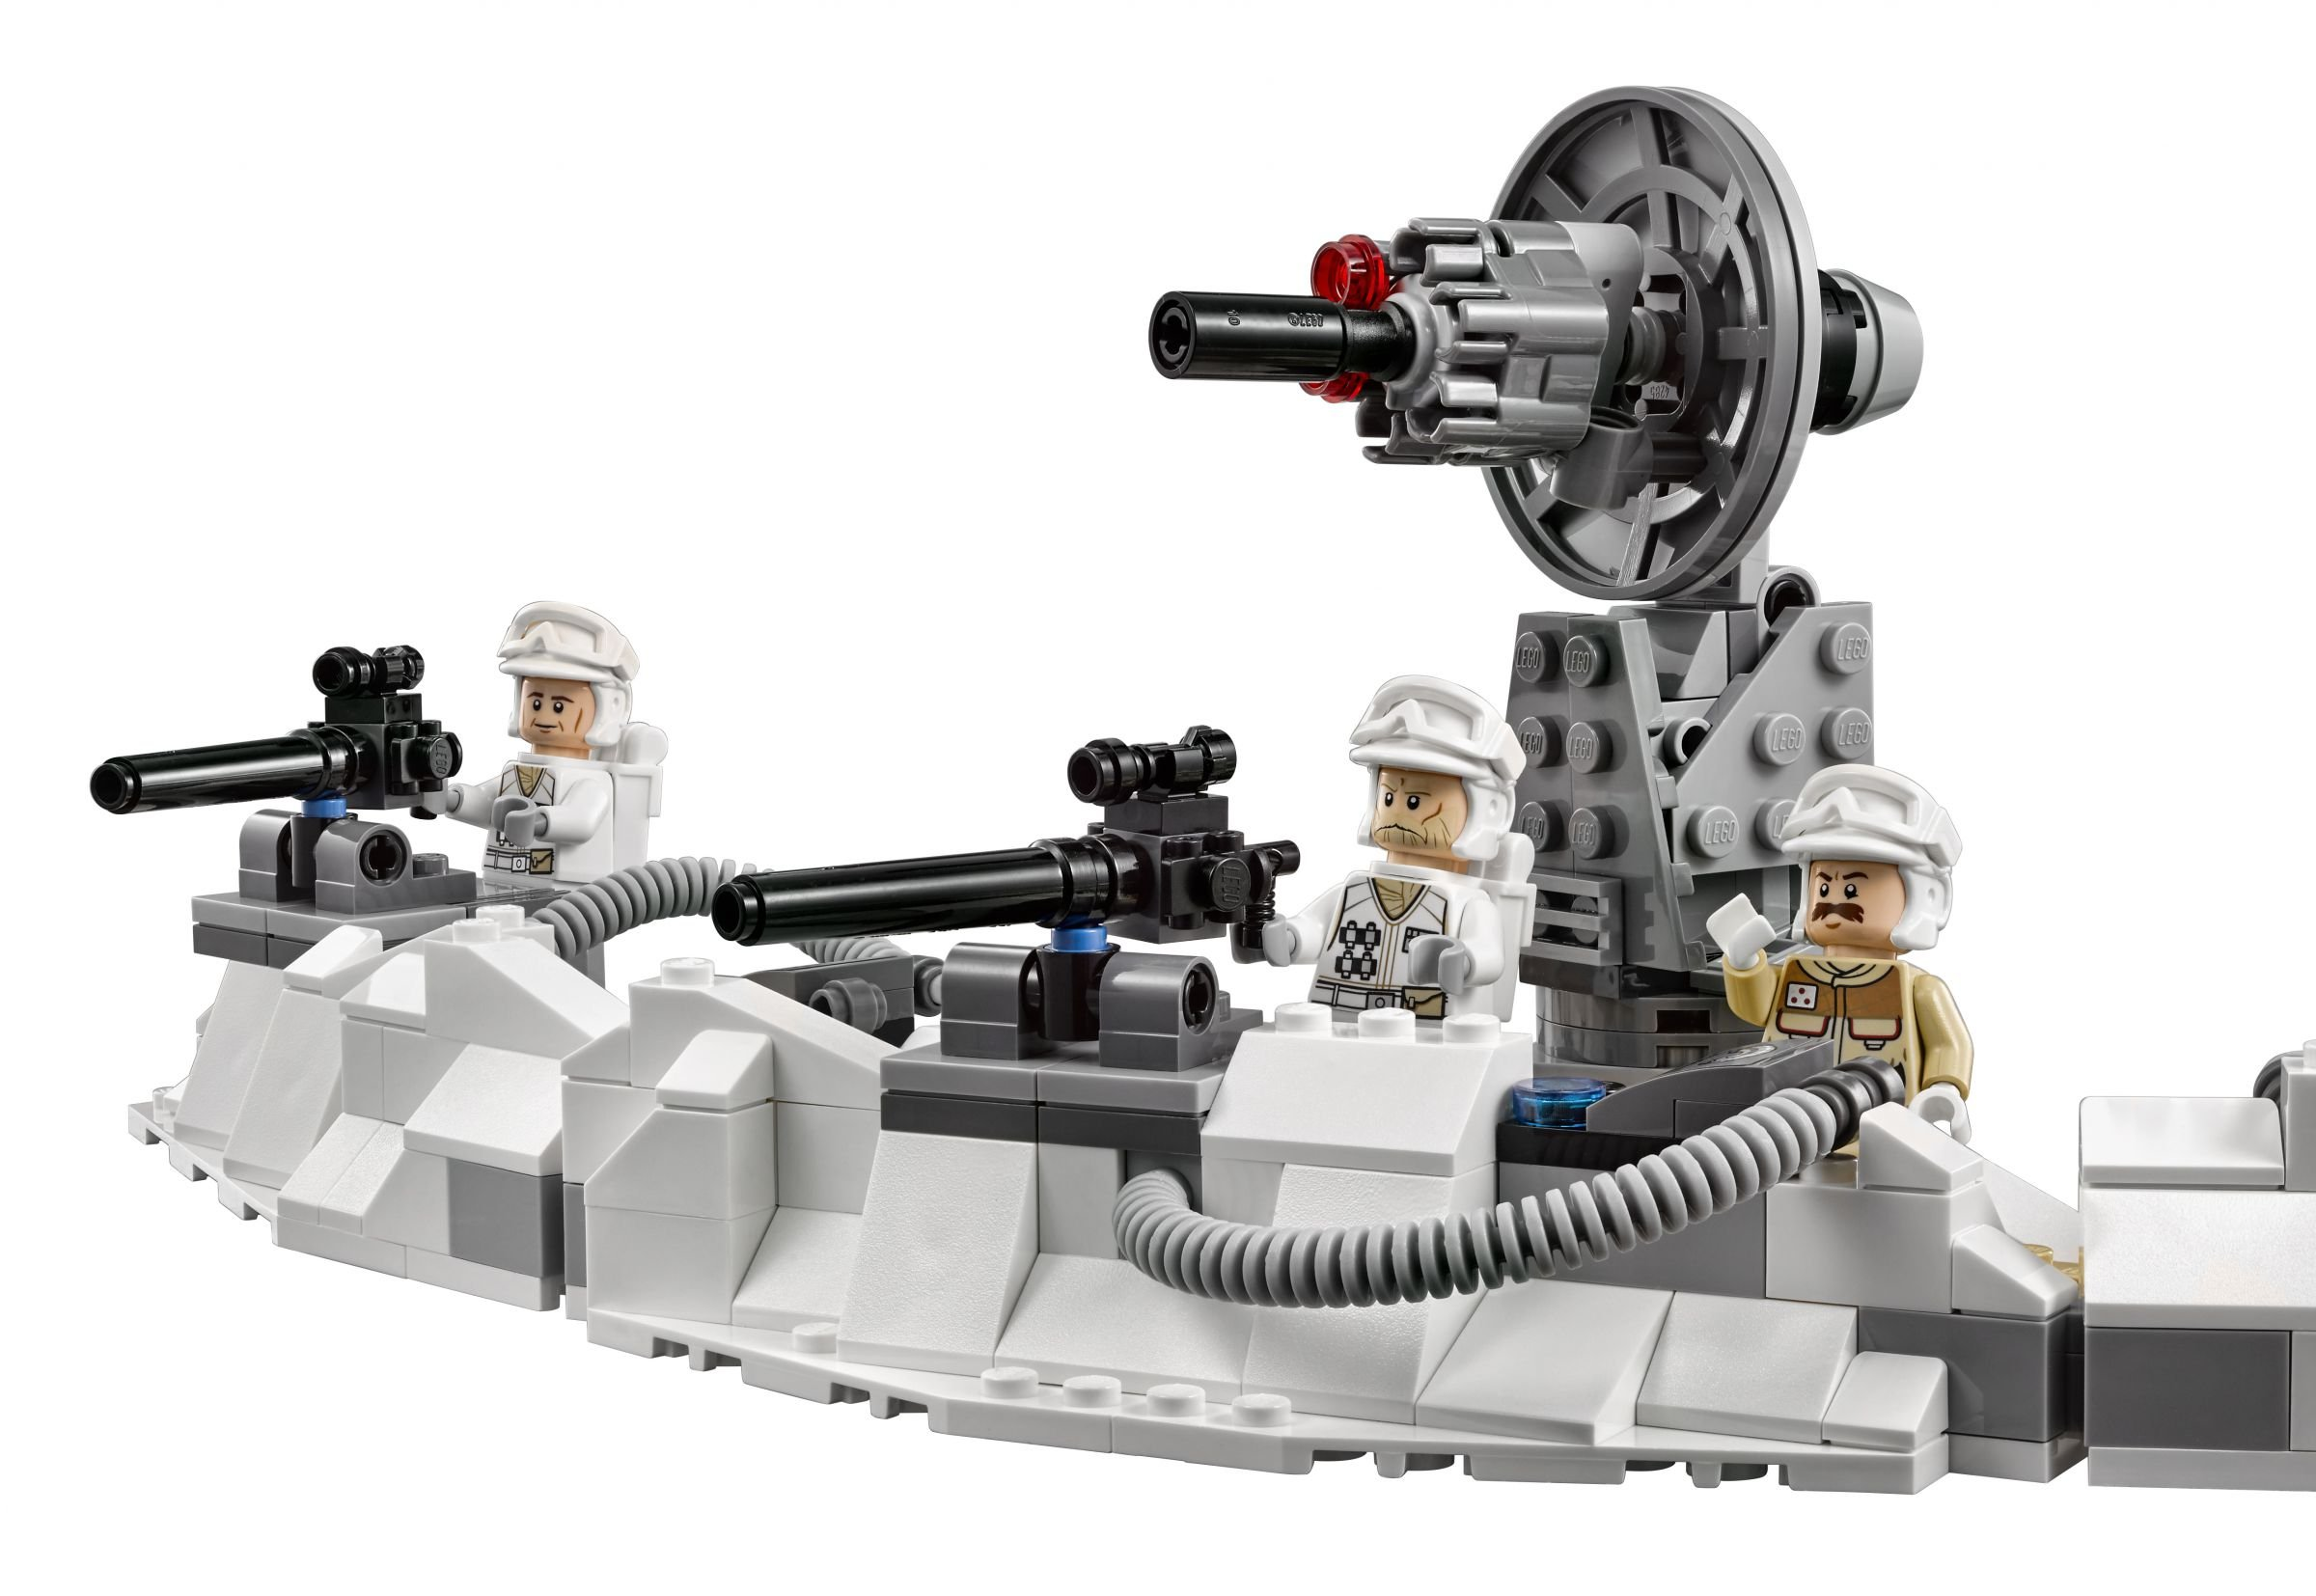 LEGO Star Wars 75098 Angriff auf Hoth™ LEGO-75098-Assault-on-Hoth-Func_007_01.jpg